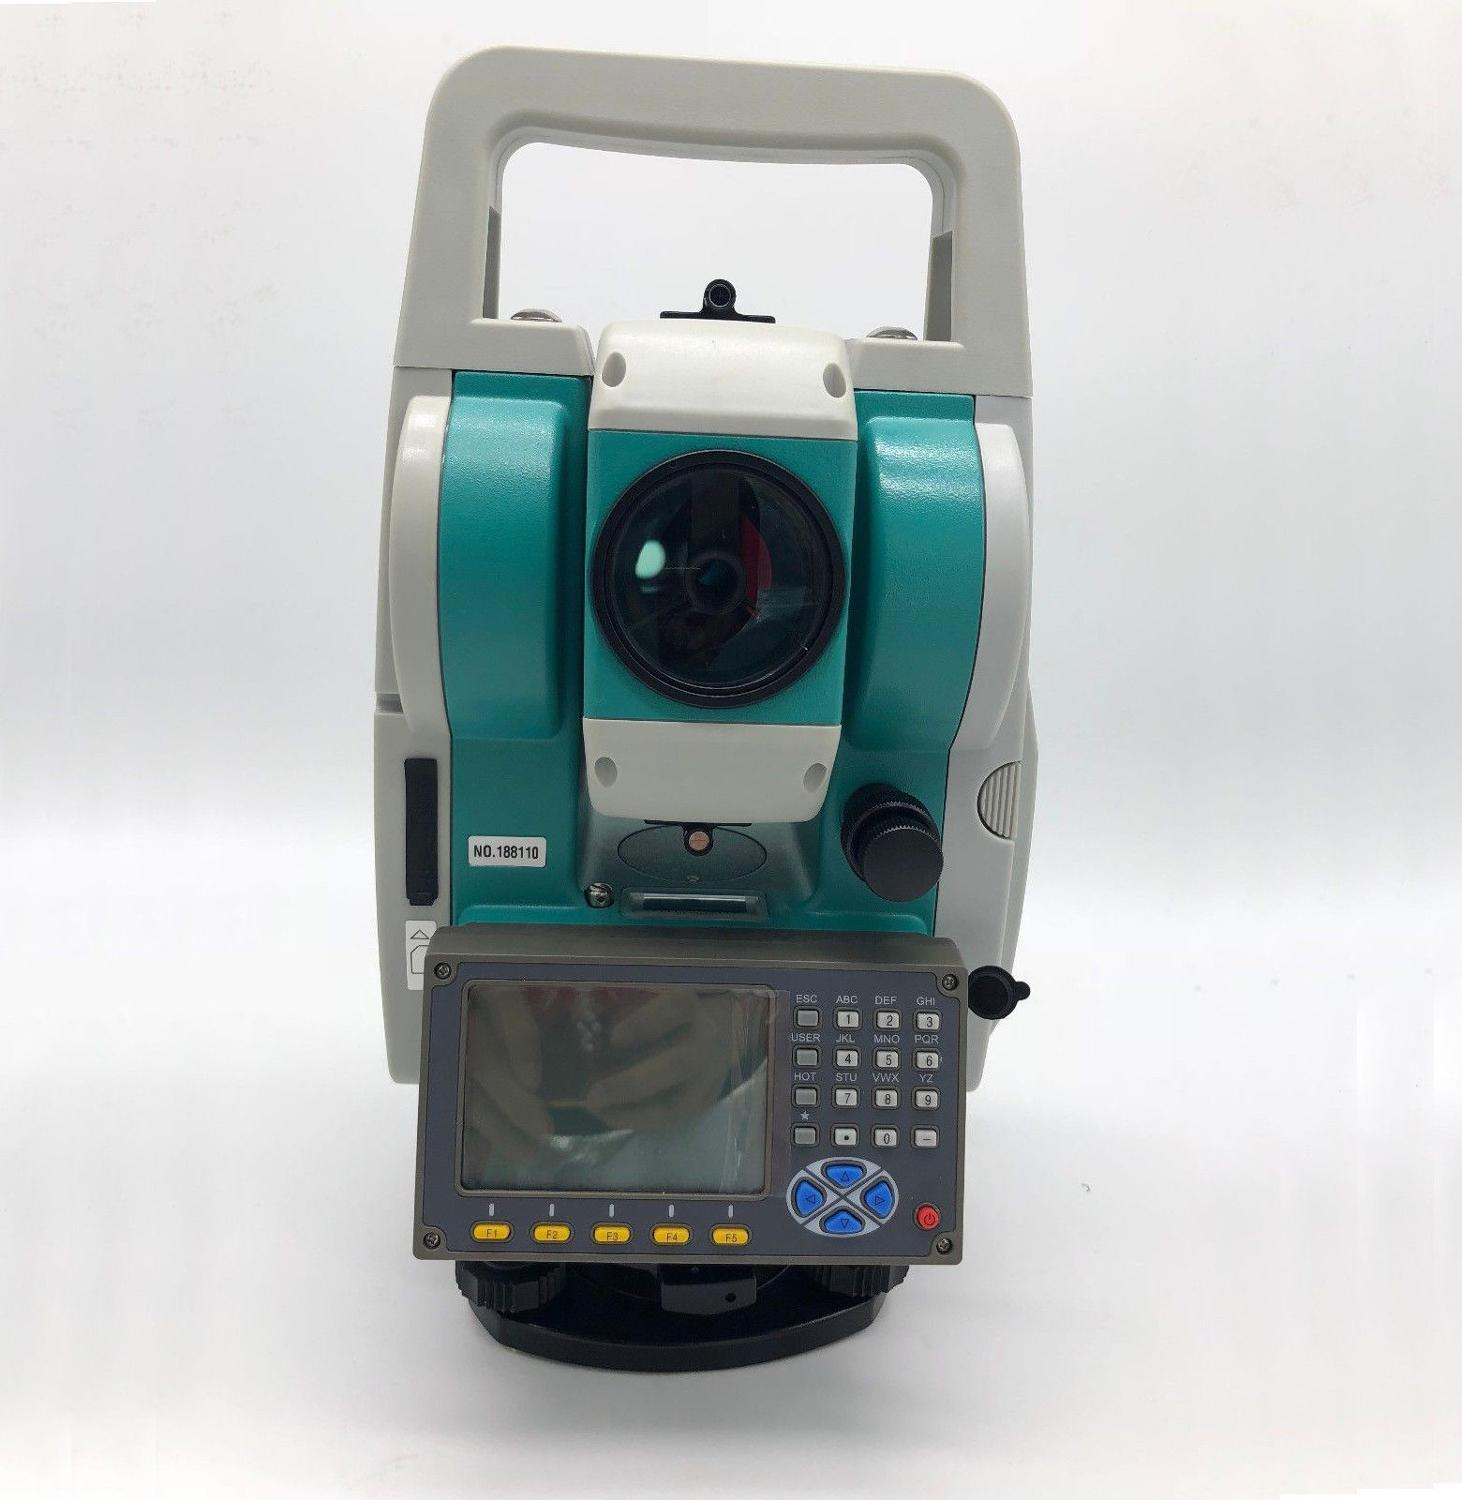 NEW Mato reflectorless 500m total station MTS 1202R-in Theodolites from Tools on Aliexpress.com | Alibaba Group